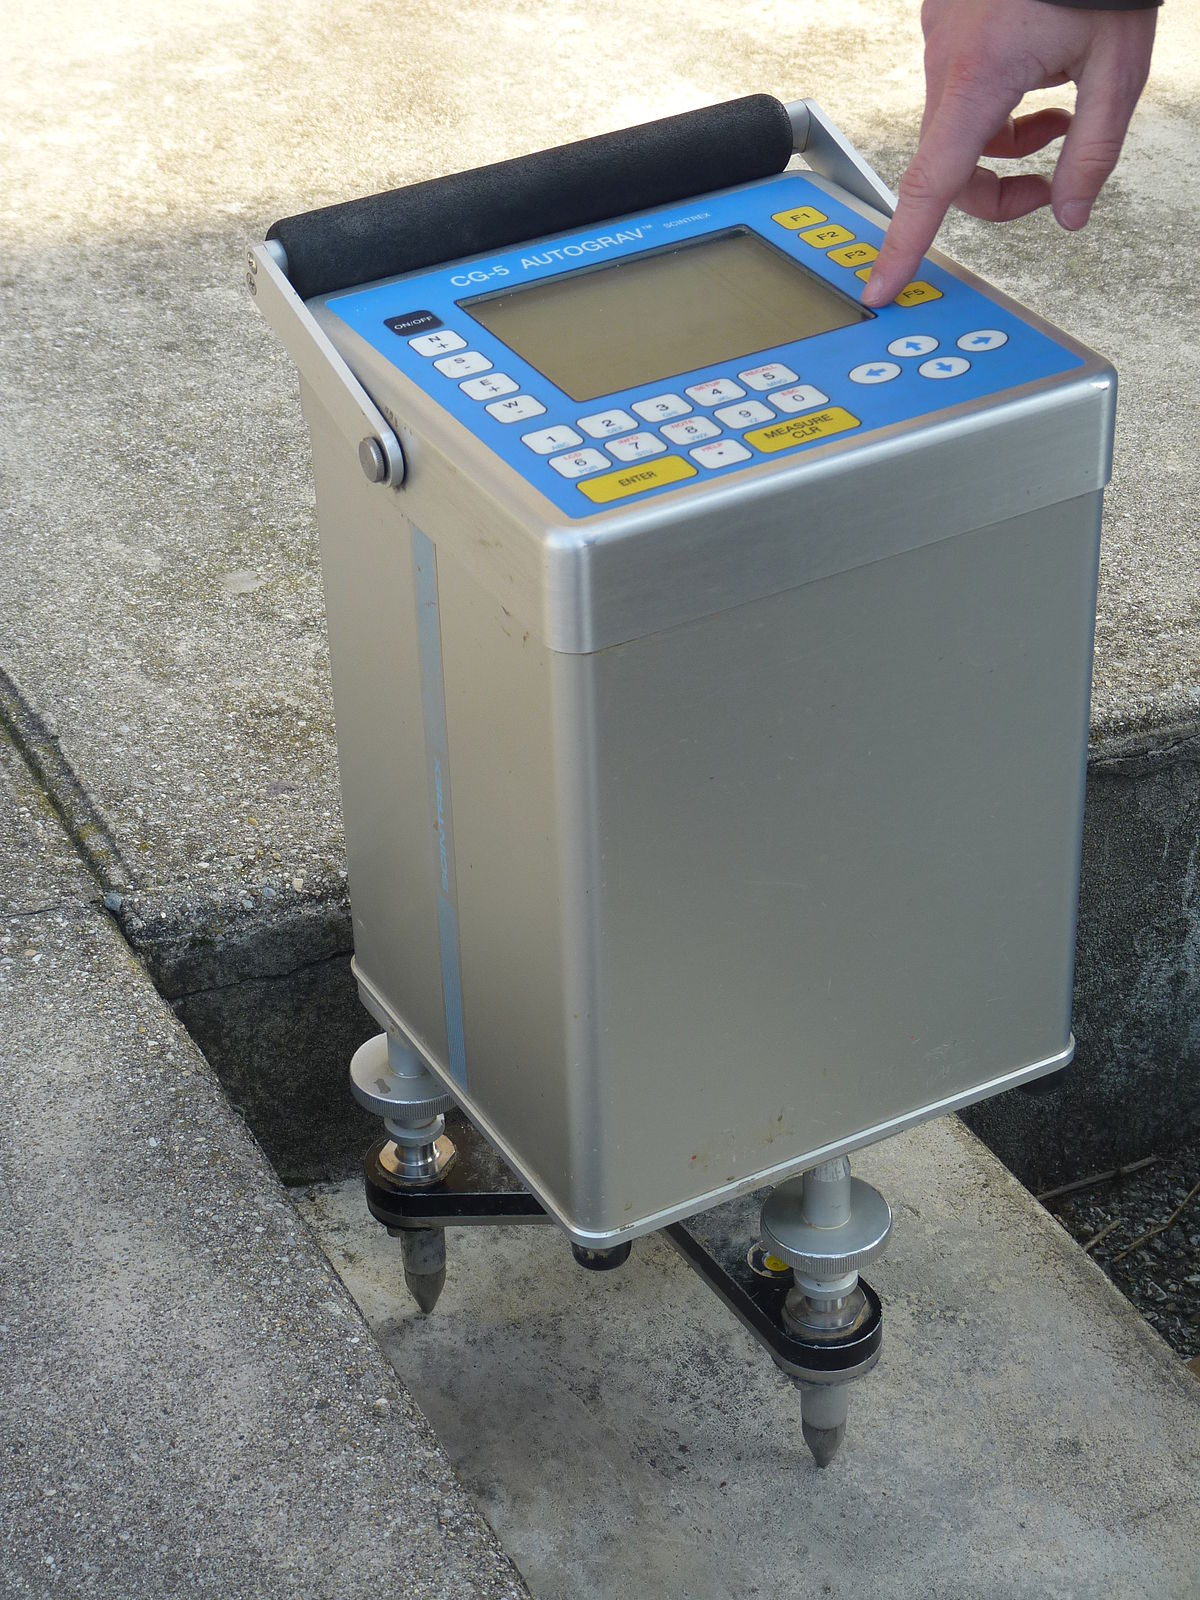 Gravimeter Wikipedia Example Of A Typical Lcr Meter As Used In Laboratories And Production